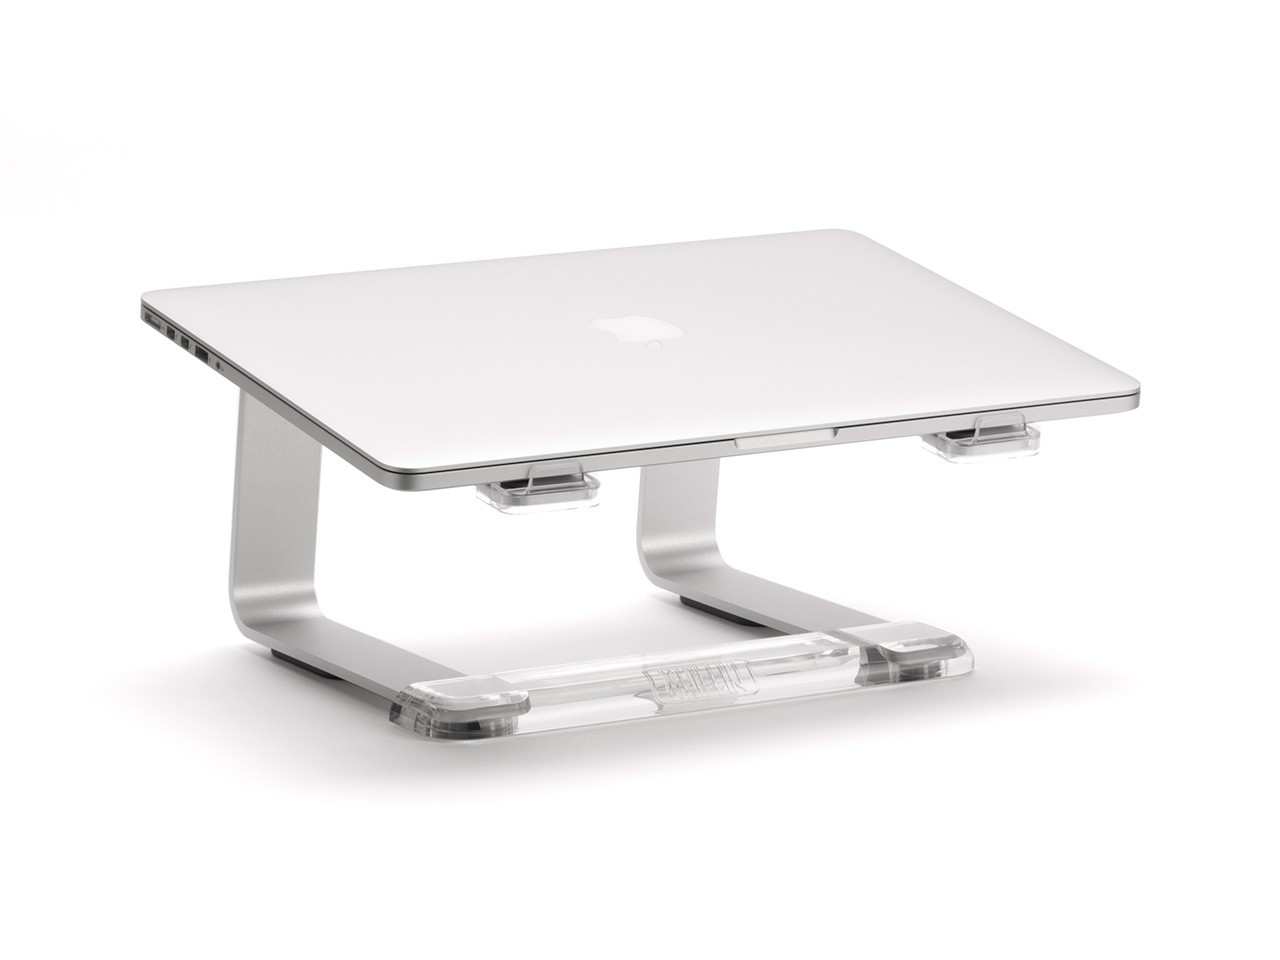 Griffin Elevator Desktop Stand for MacBooks and other laptops, GRIGC16034